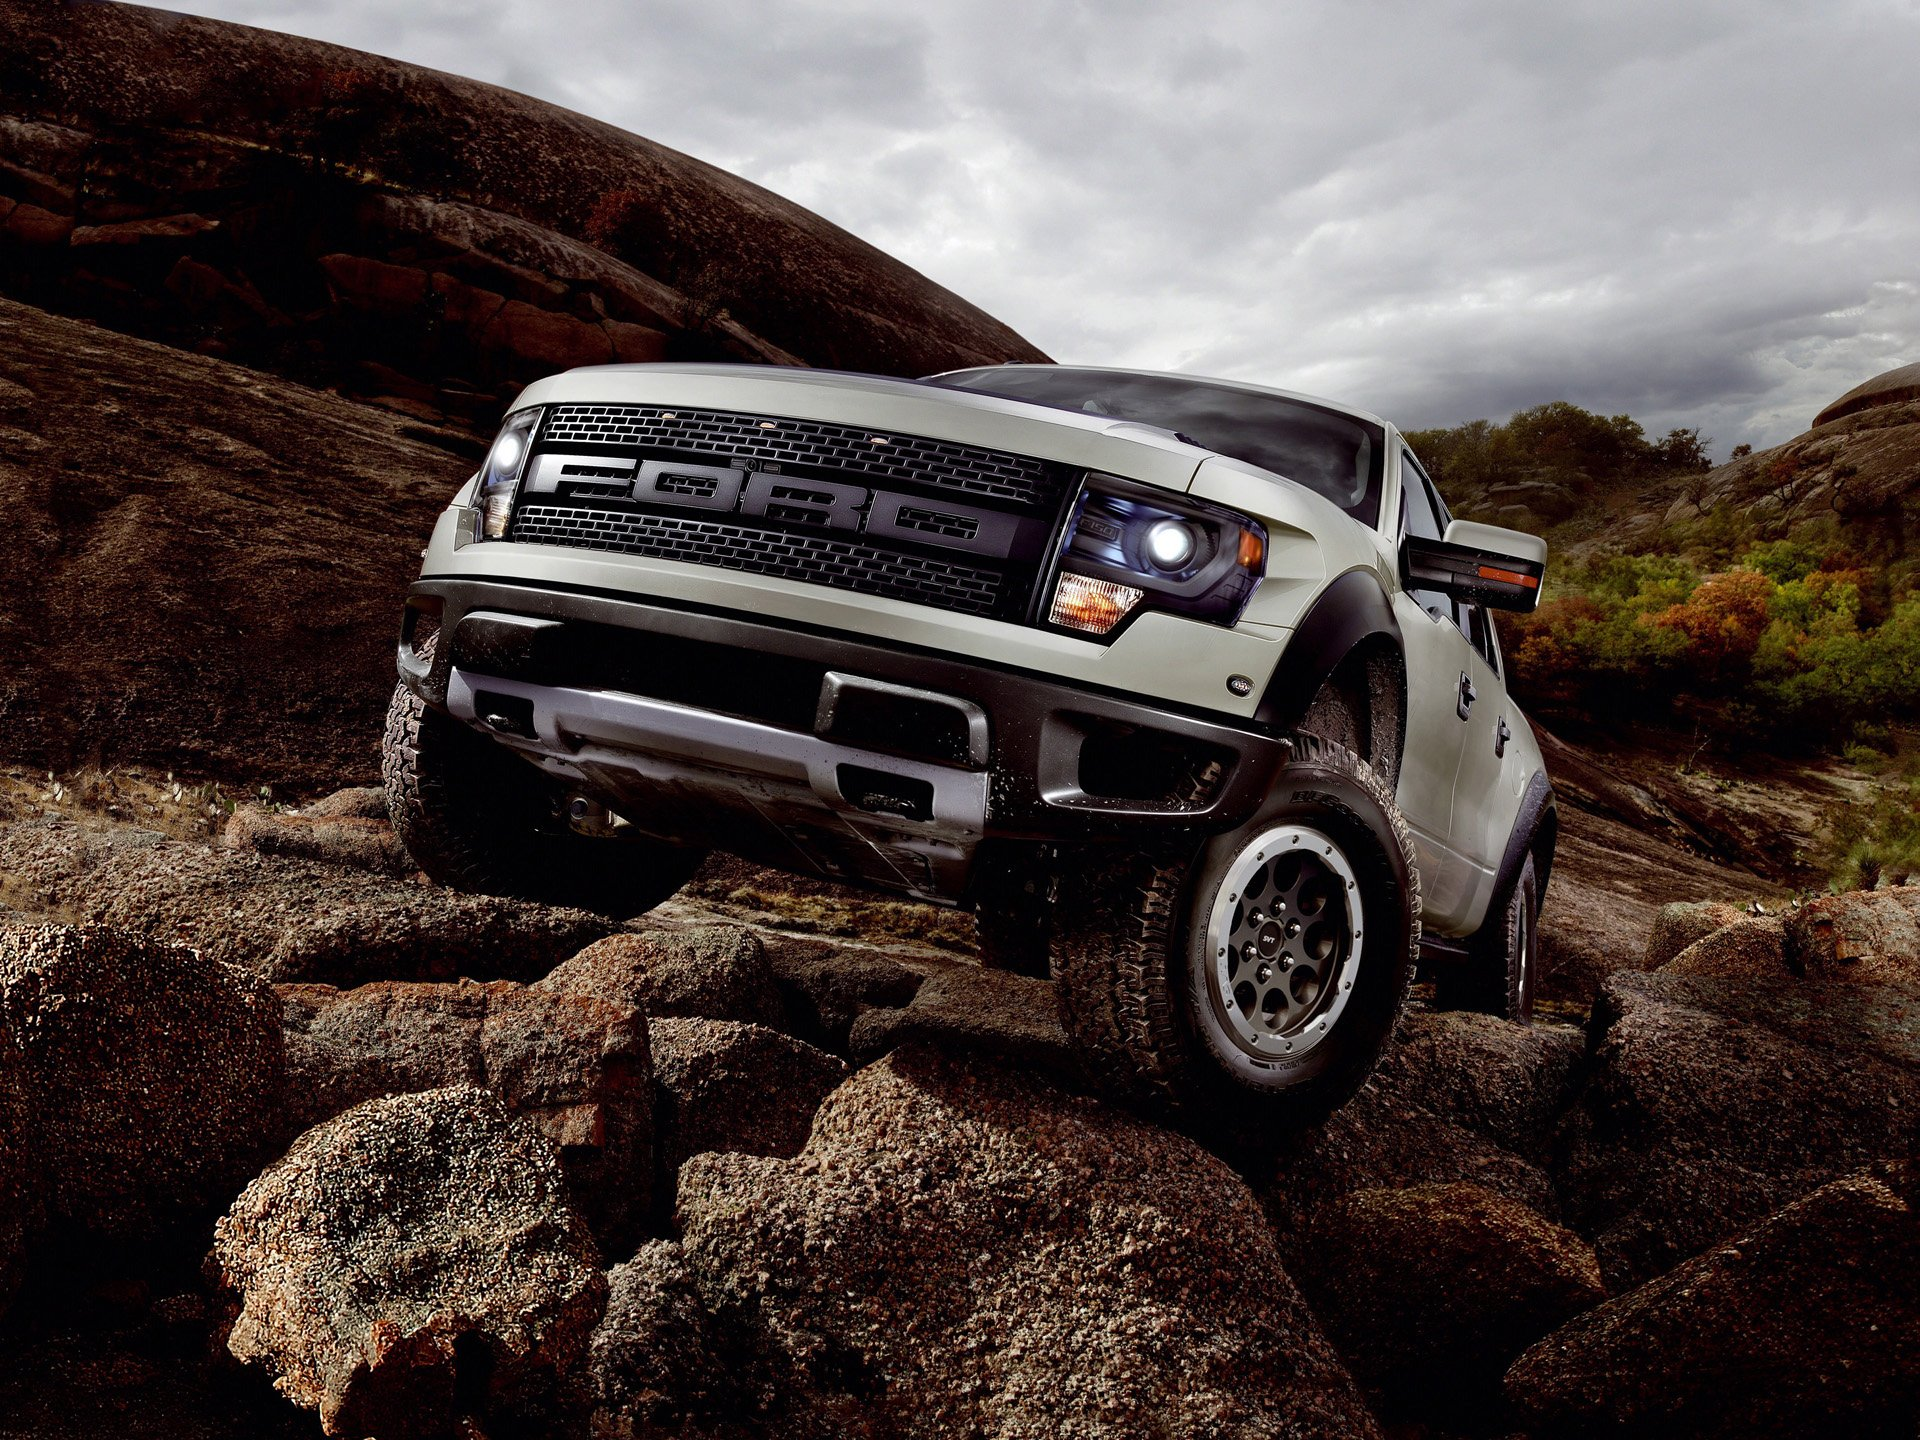 2013 Ford SVT Raptor Static wallpapers 2013 Ford SVT Raptor Static 1920x1440